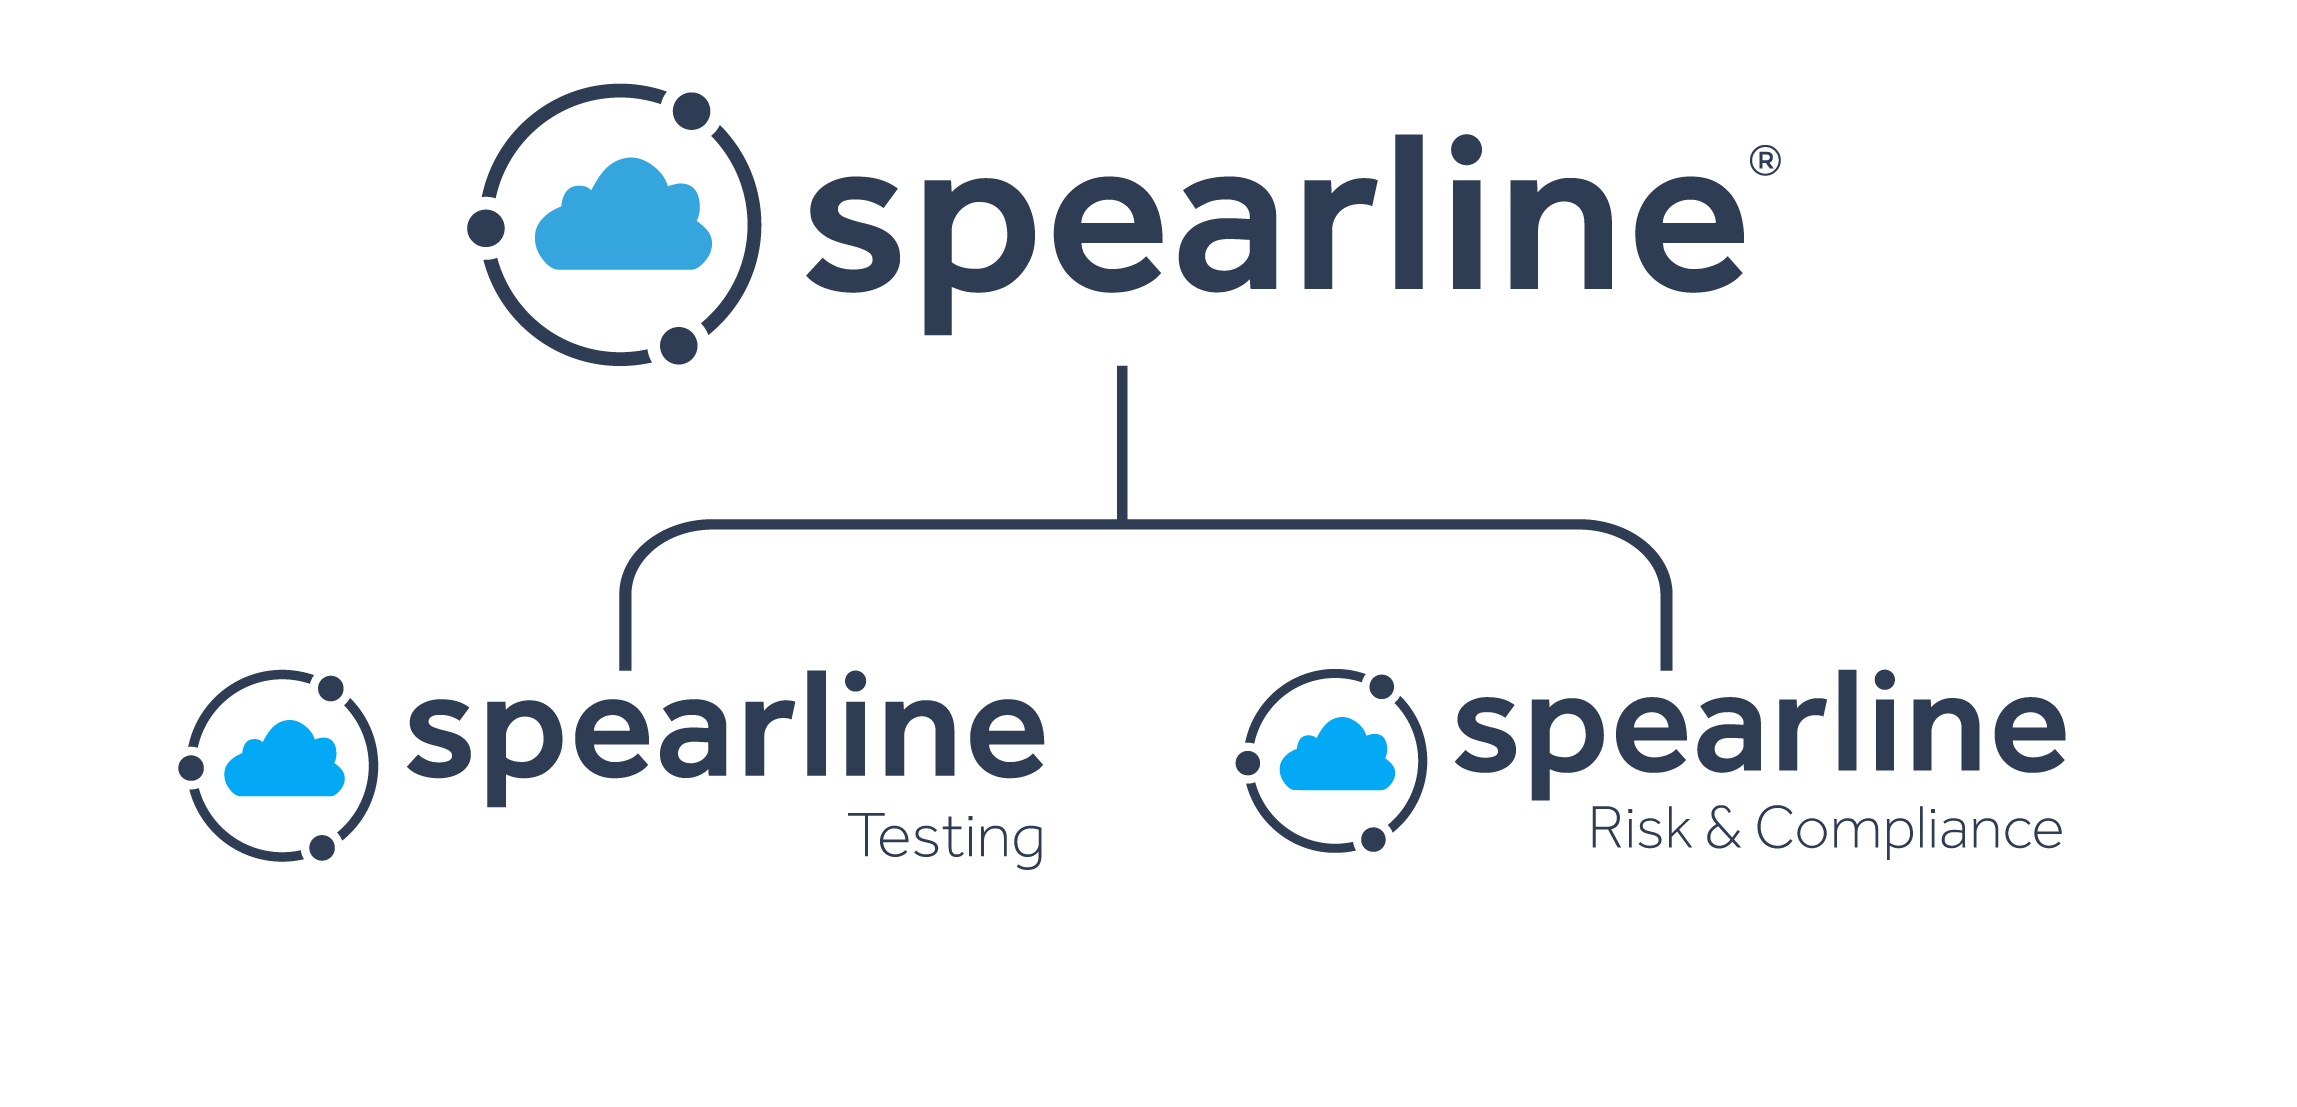 Spearline group - more than number testing